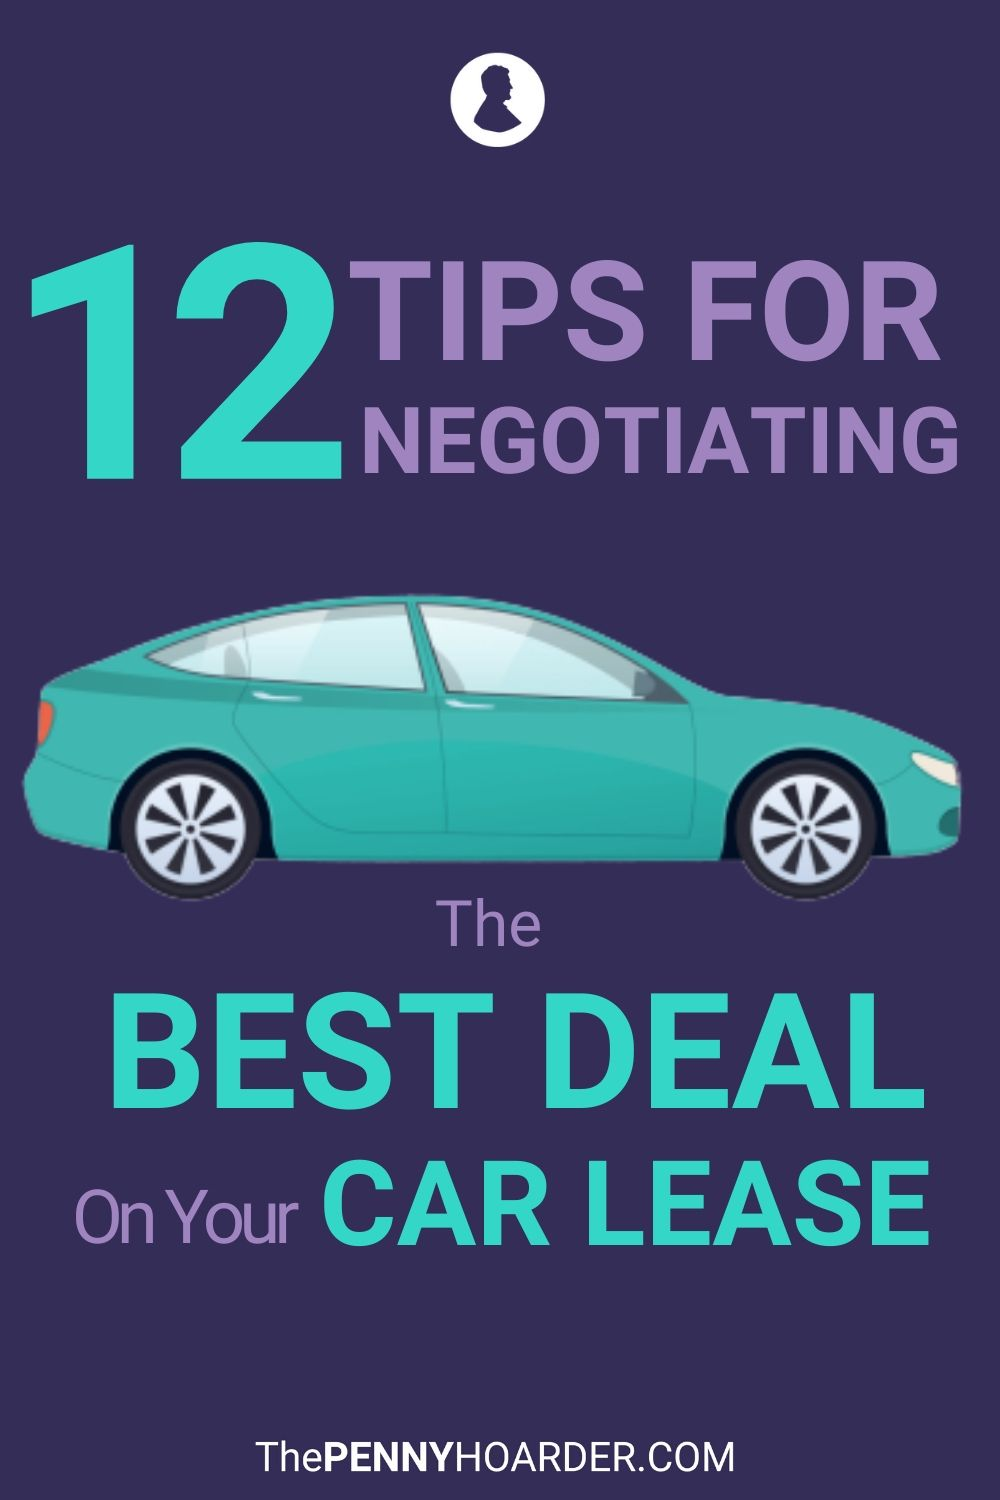 12 Tips for Negotiating the Best Deal on Your Car Lease